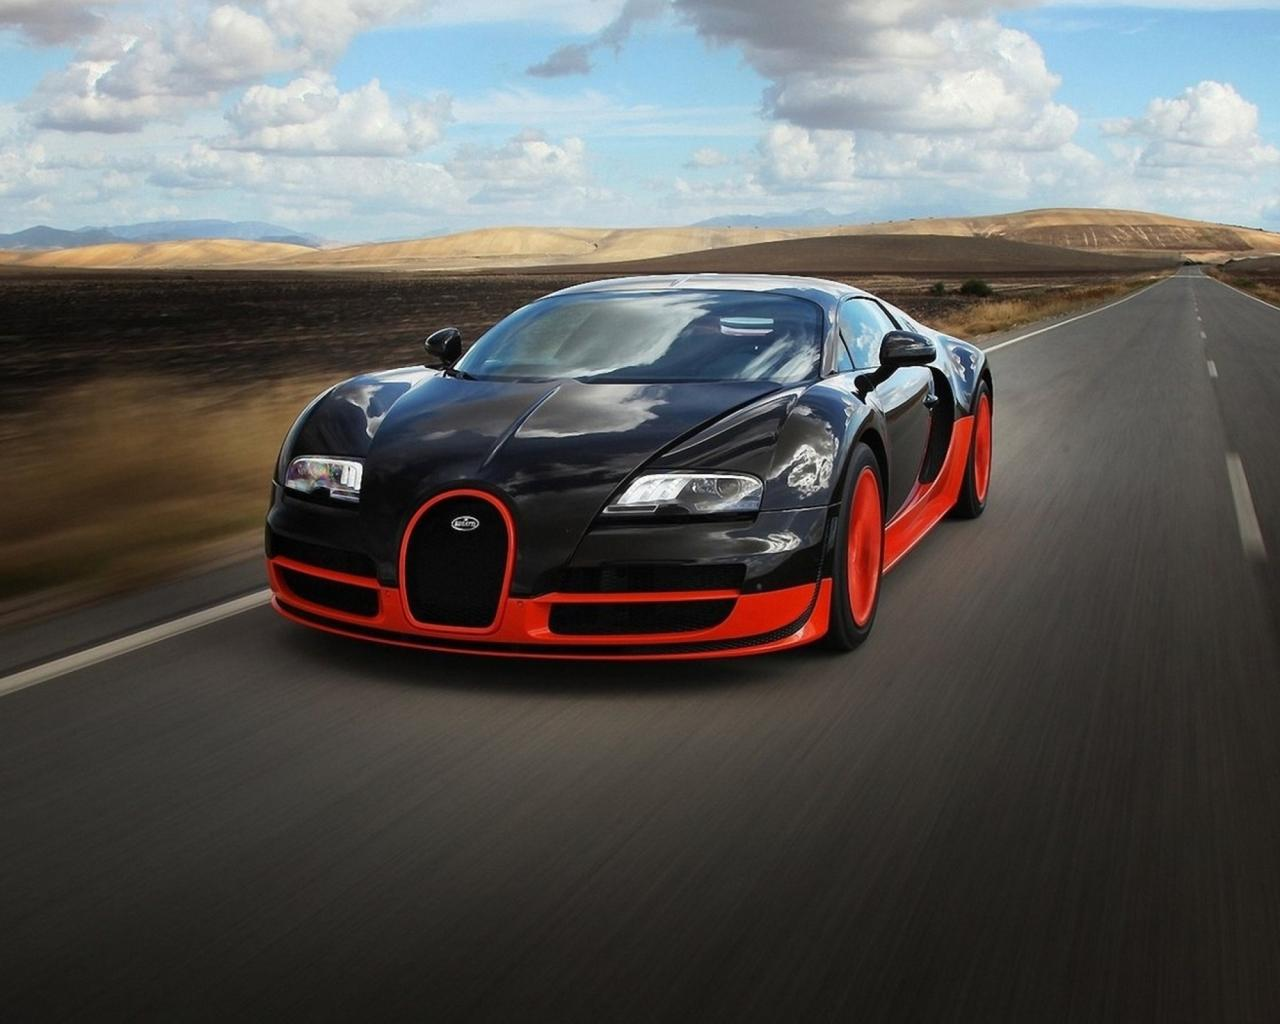 Red Bugatti Veyron Wallpaper 6202 Hd Wallpapers in Cars   Imagescicom 1280x1024